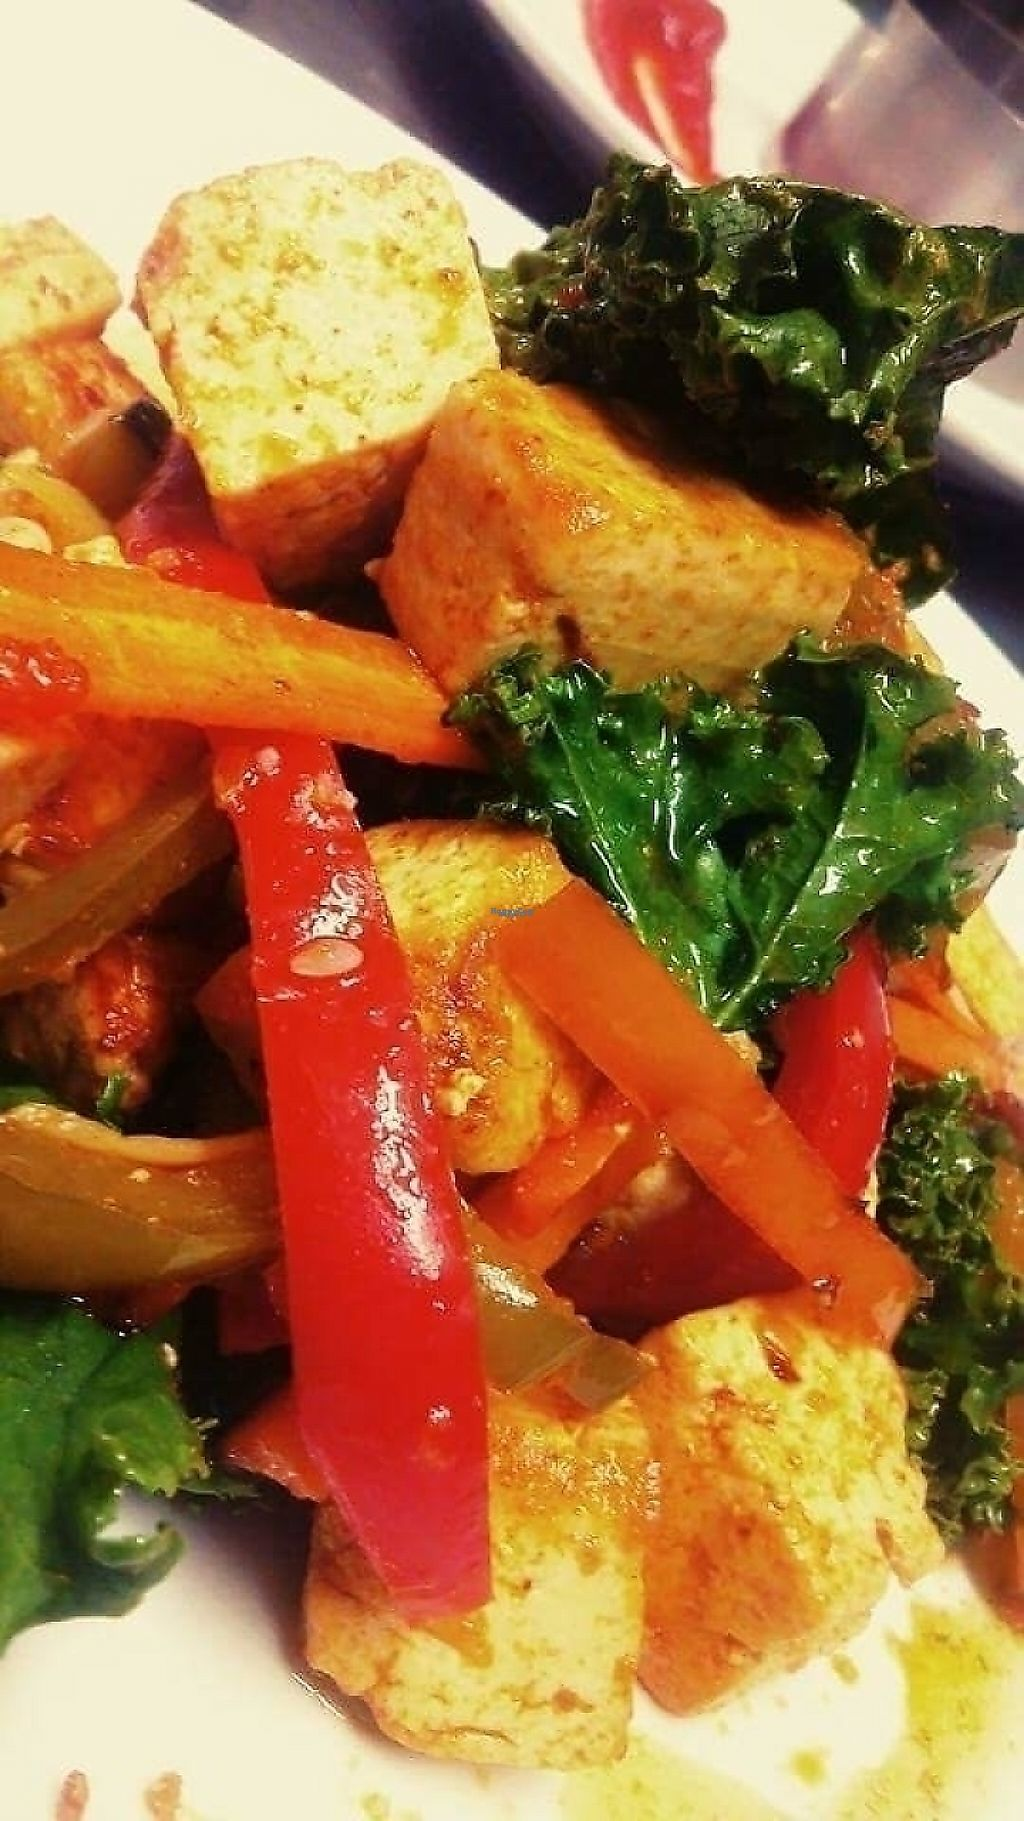 """Photo of El Fogon Verde  by <a href=""""/members/profile/Andrea13"""">Andrea13</a> <br/>Marinated tofu with vegetables  <br/> August 25, 2016  - <a href='/contact/abuse/image/76468/209554'>Report</a>"""